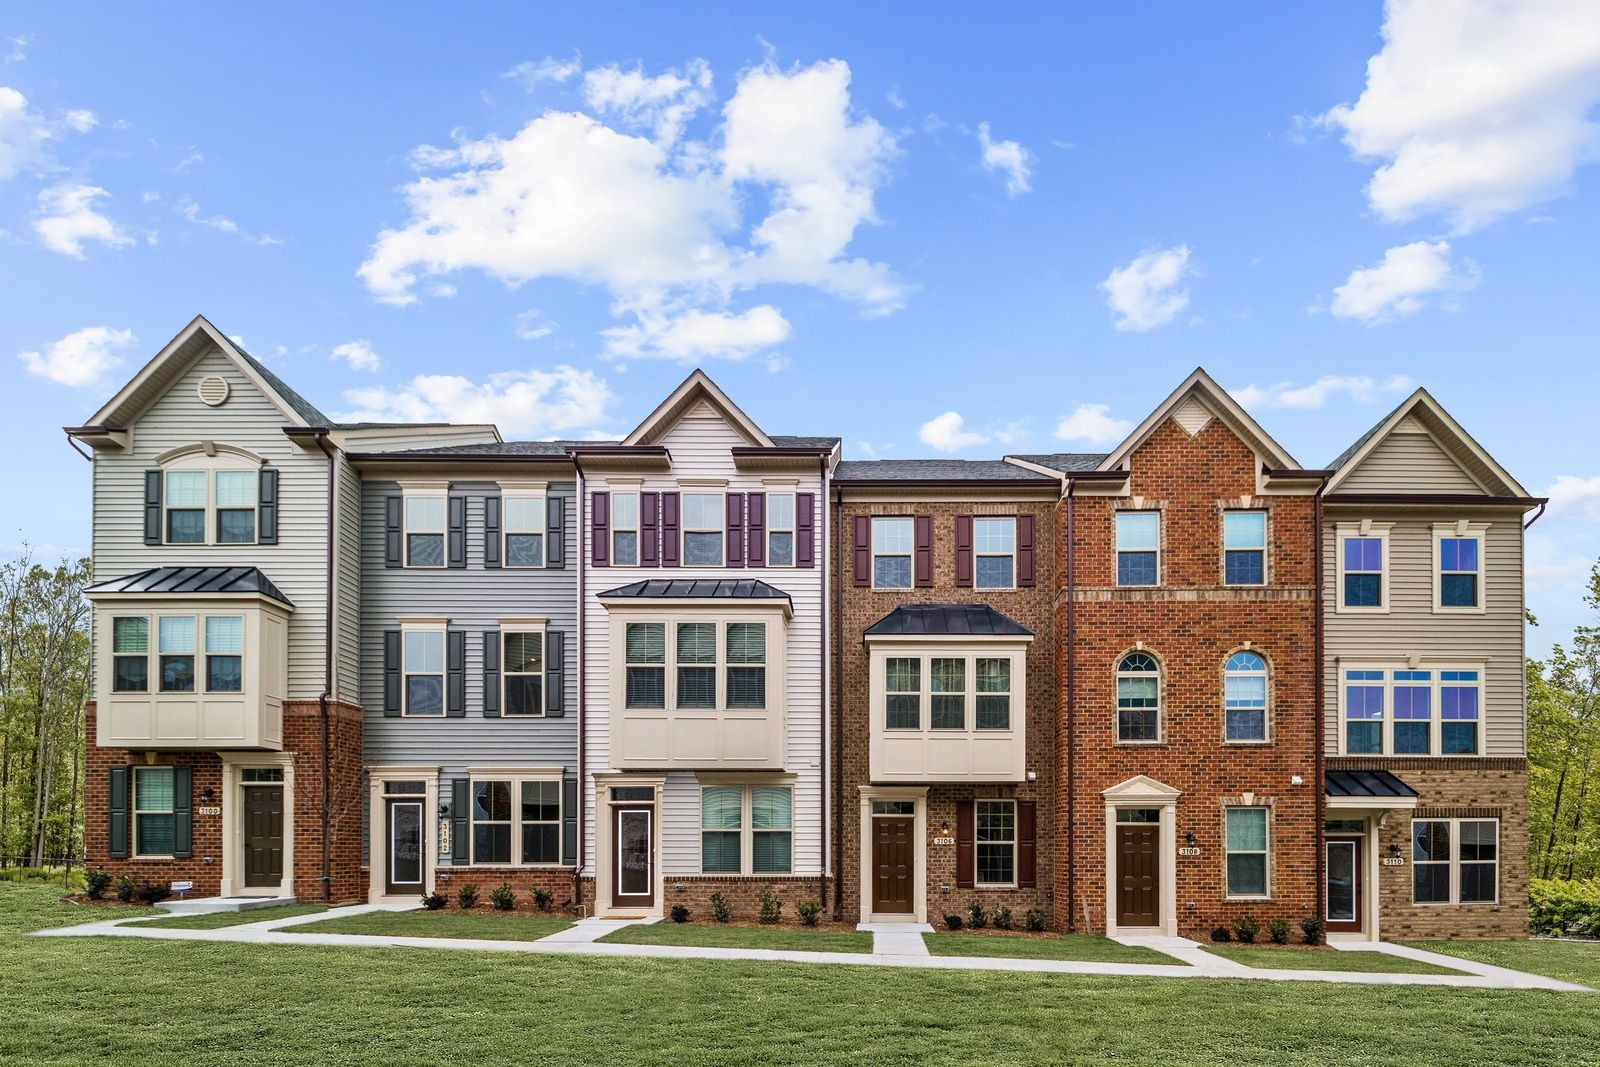 DON'T MISS OUT ON YOUR OPPORTUNITY TO OWN AT PARKSIDE ROW!:Join the VIP Listand our sales representative will contact you with more information. Plus you will have an opportunity to schedule your 1-on-1 Appointment today!